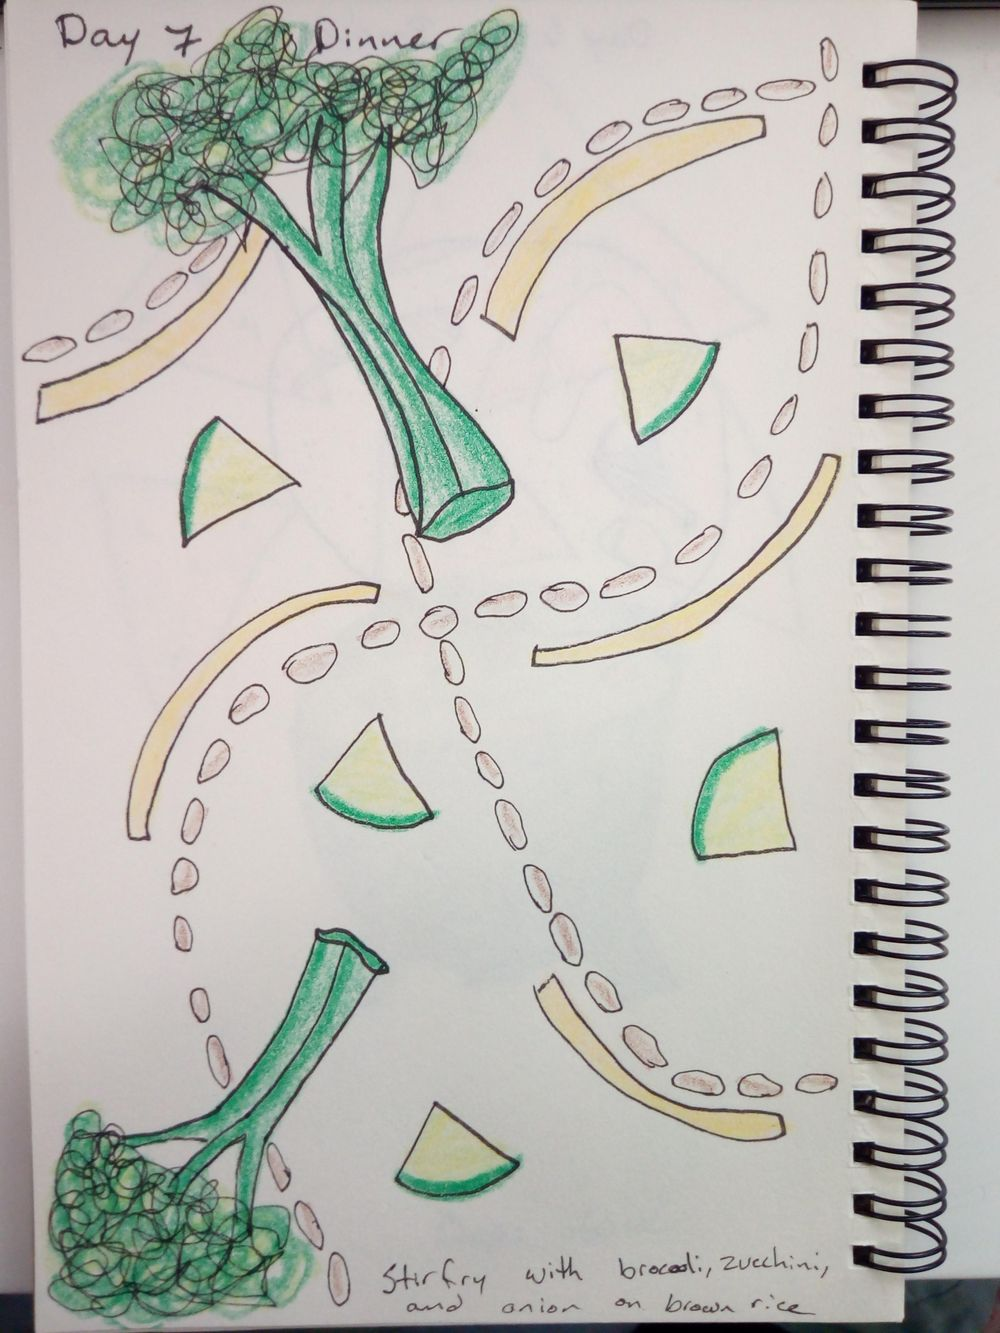 mindful eating/drawing - image 7 - student project